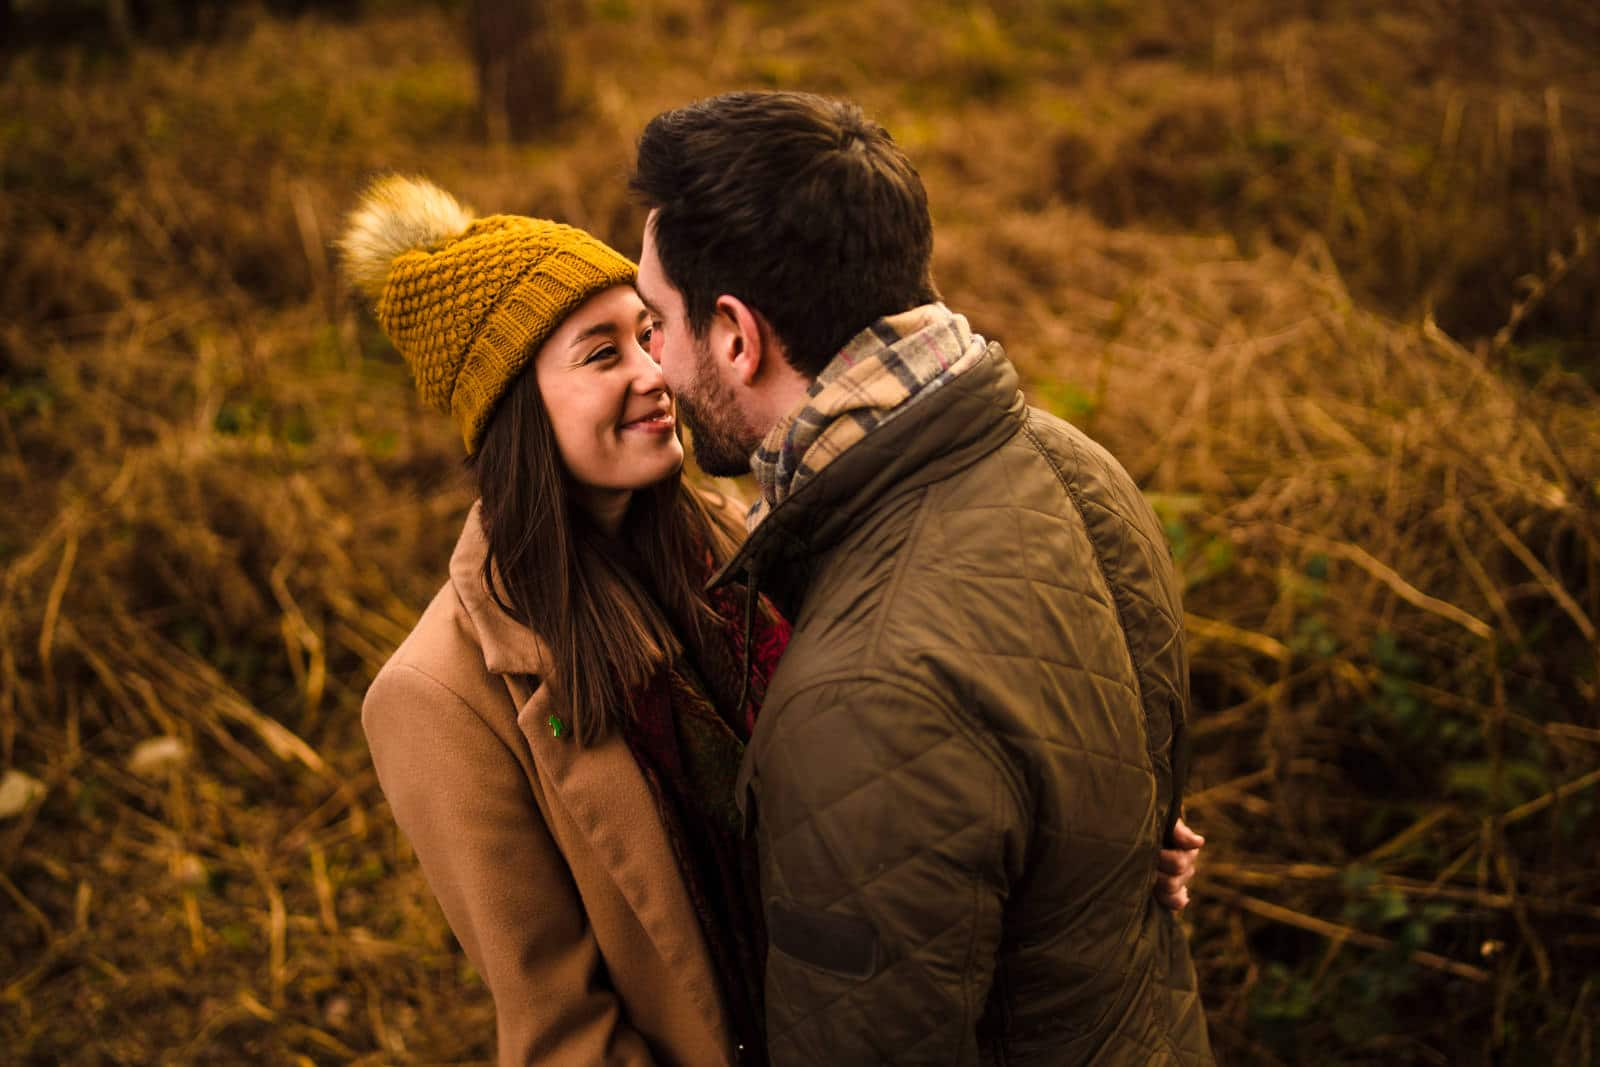 Couple rubbing noses on engagement shoot